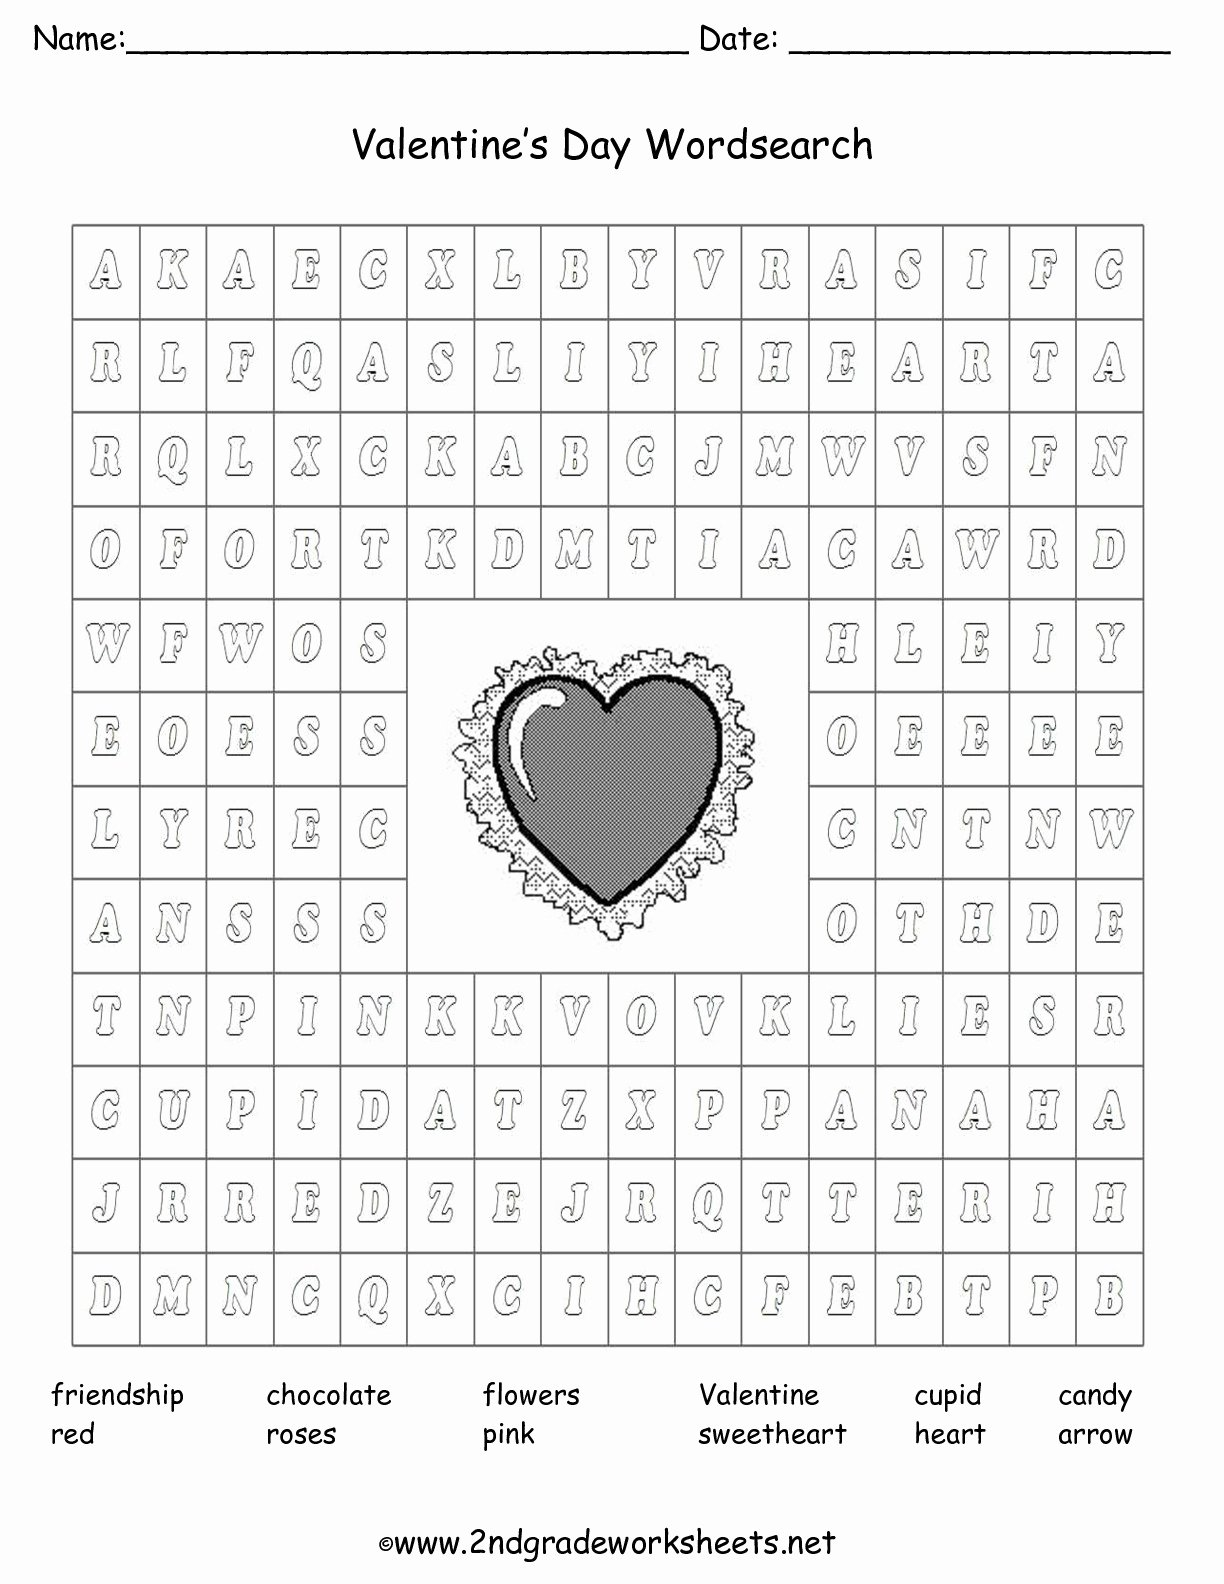 Valentines Day Multiplication Worksheets Fresh Valentine Printouts and Worksheets Fun Math